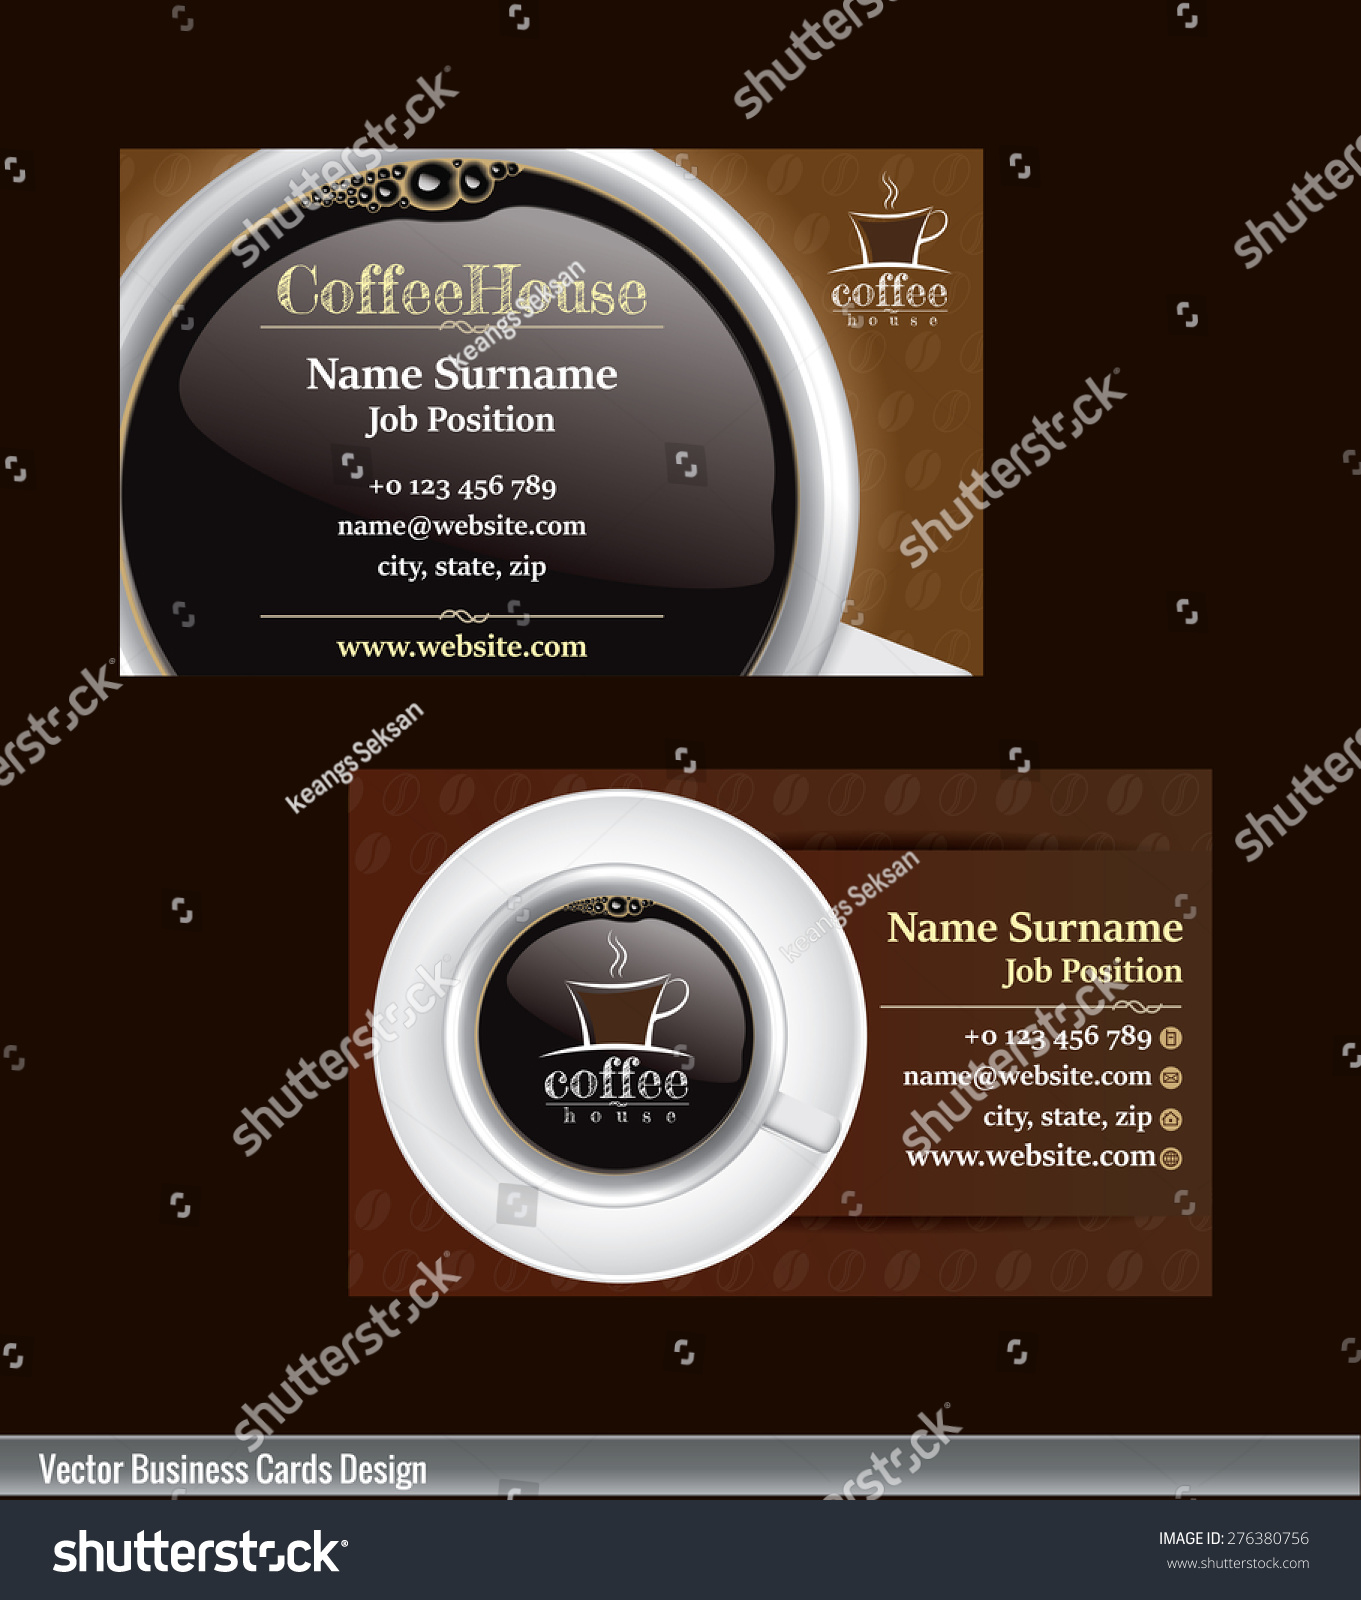 2 Set Coffee Business Card Template Stock Vector 276380756 ...